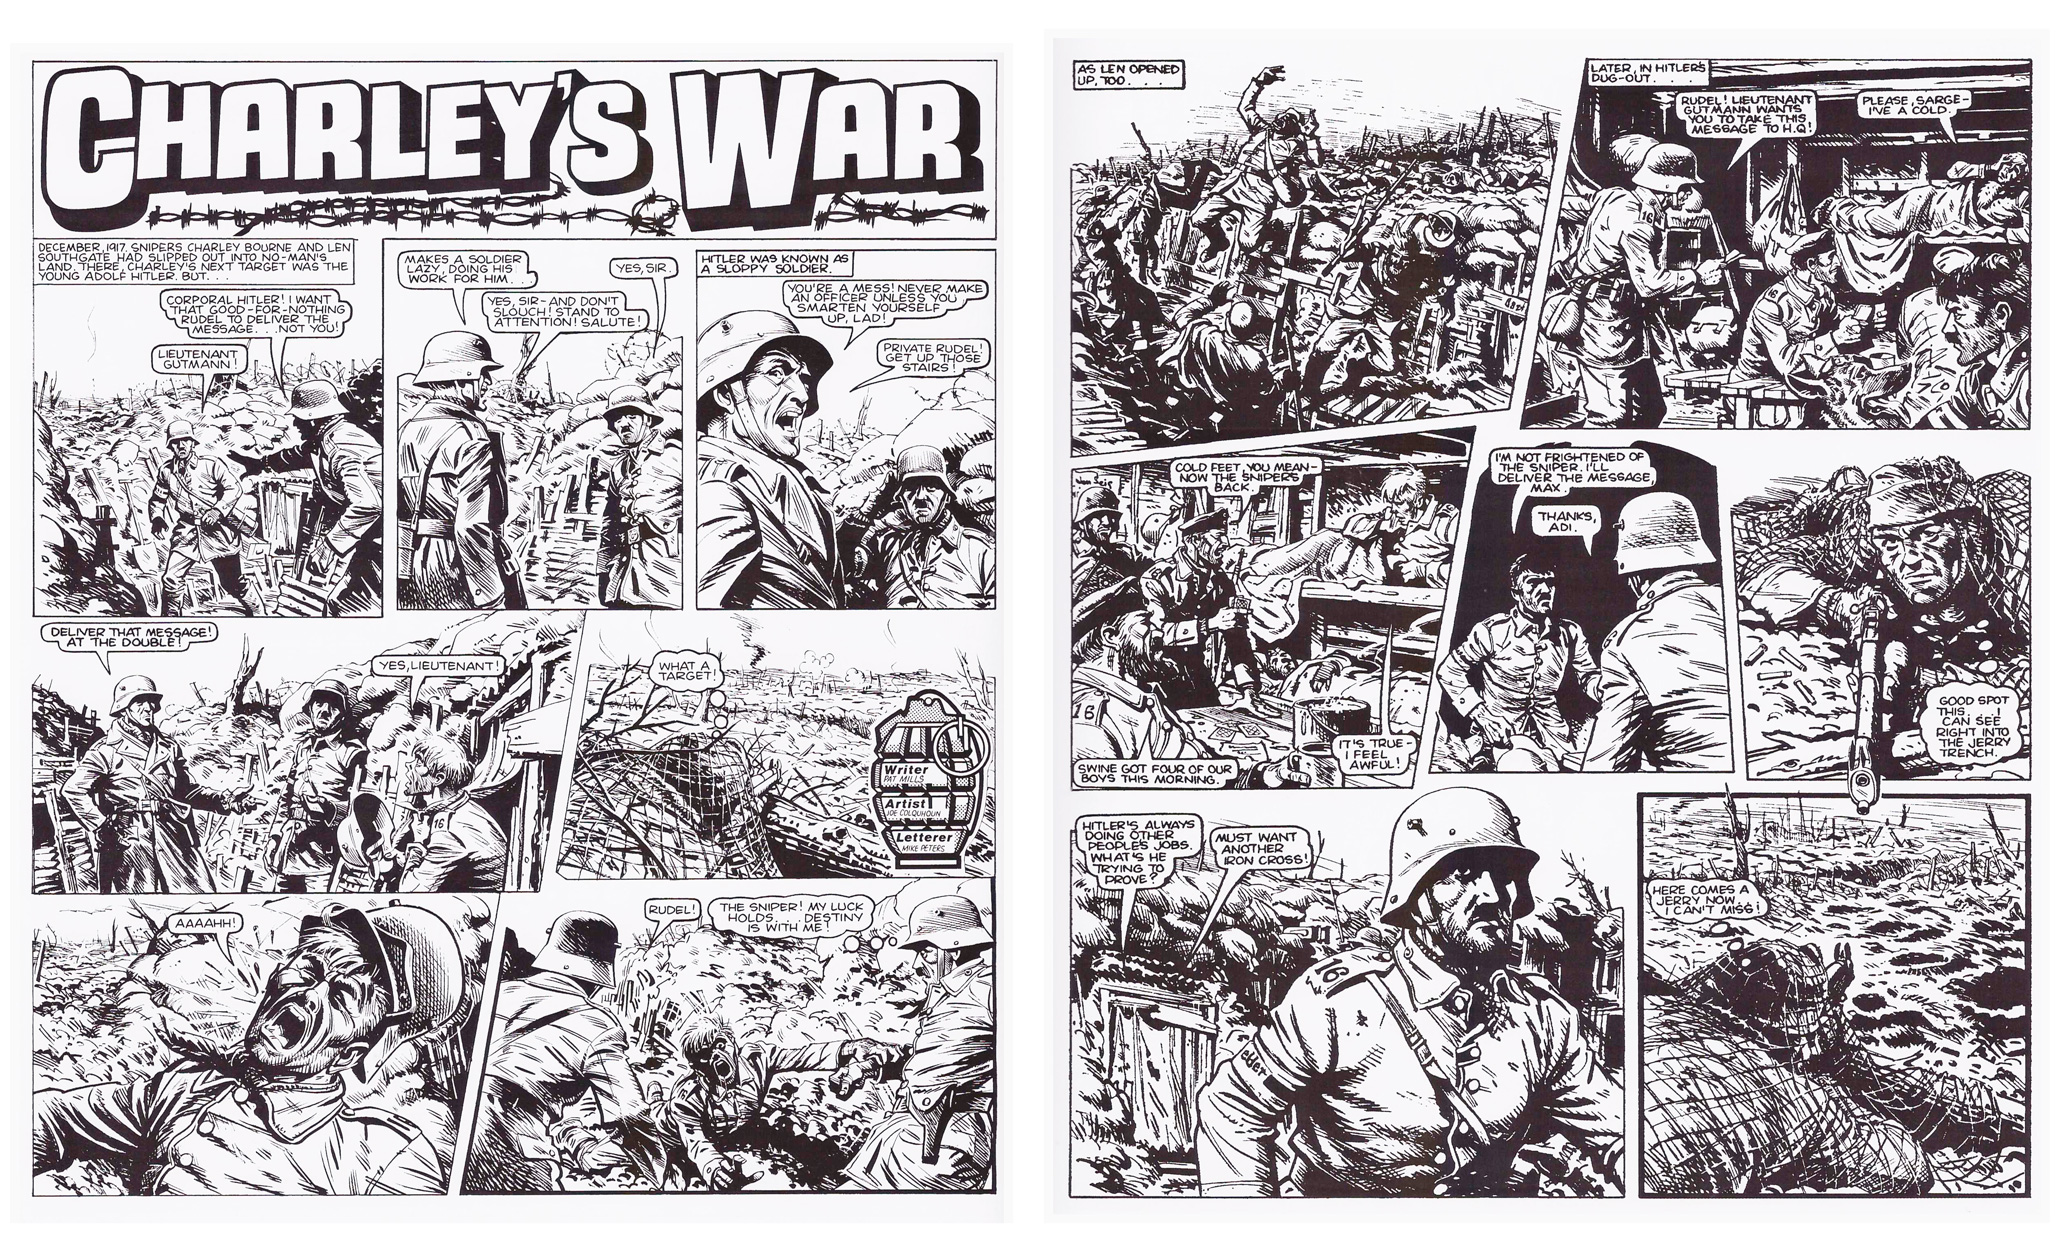 Charley's War Hitler's Youth review